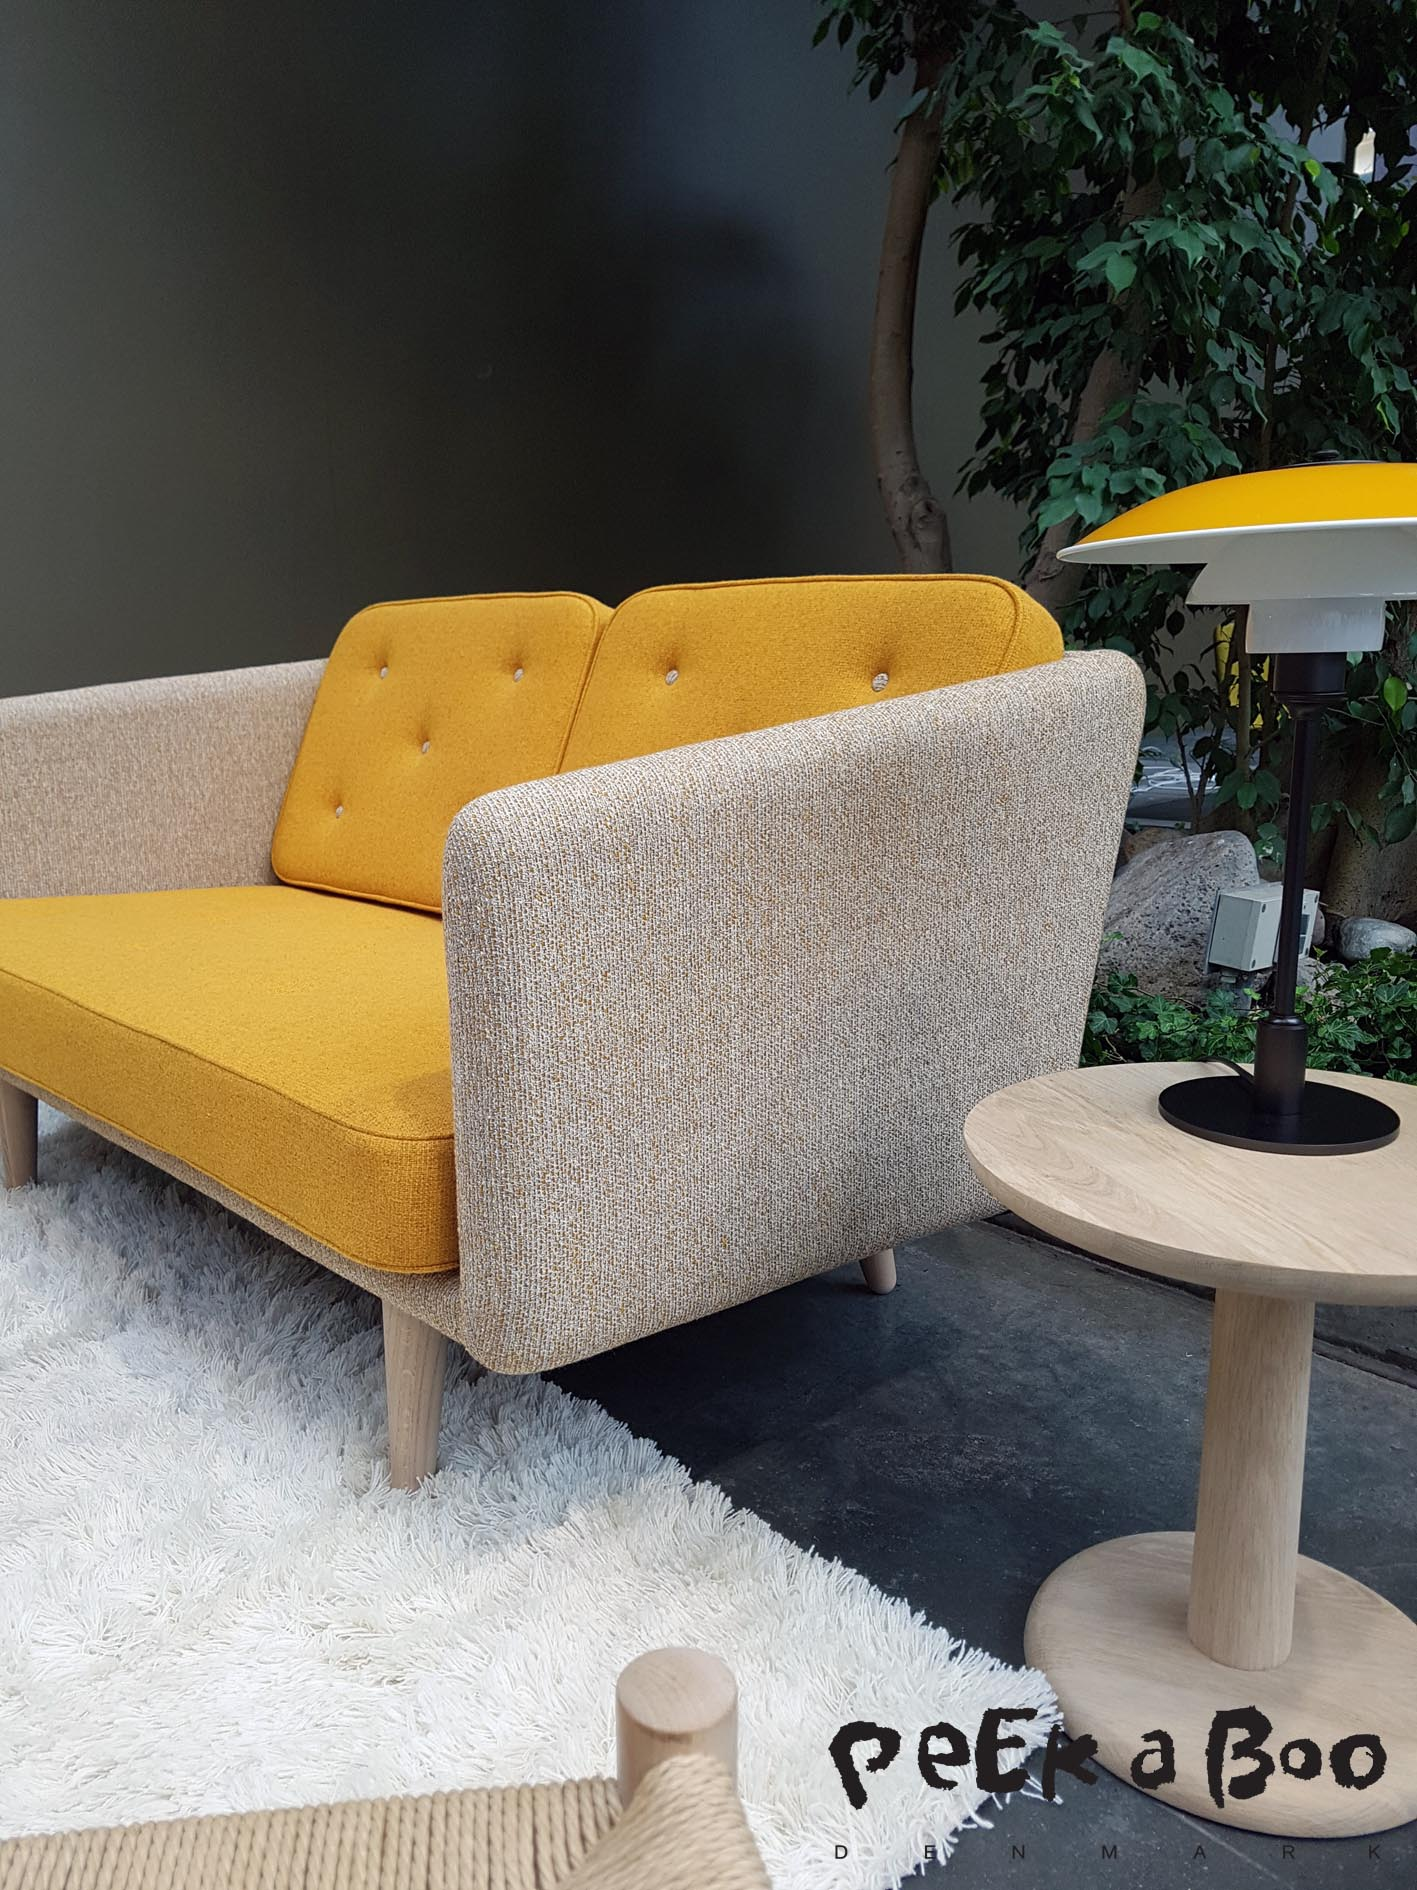 Fredericia Funiture did a sofa in a combi of yellow and a light beige, which made it look fresh. I like the colour combi very much.